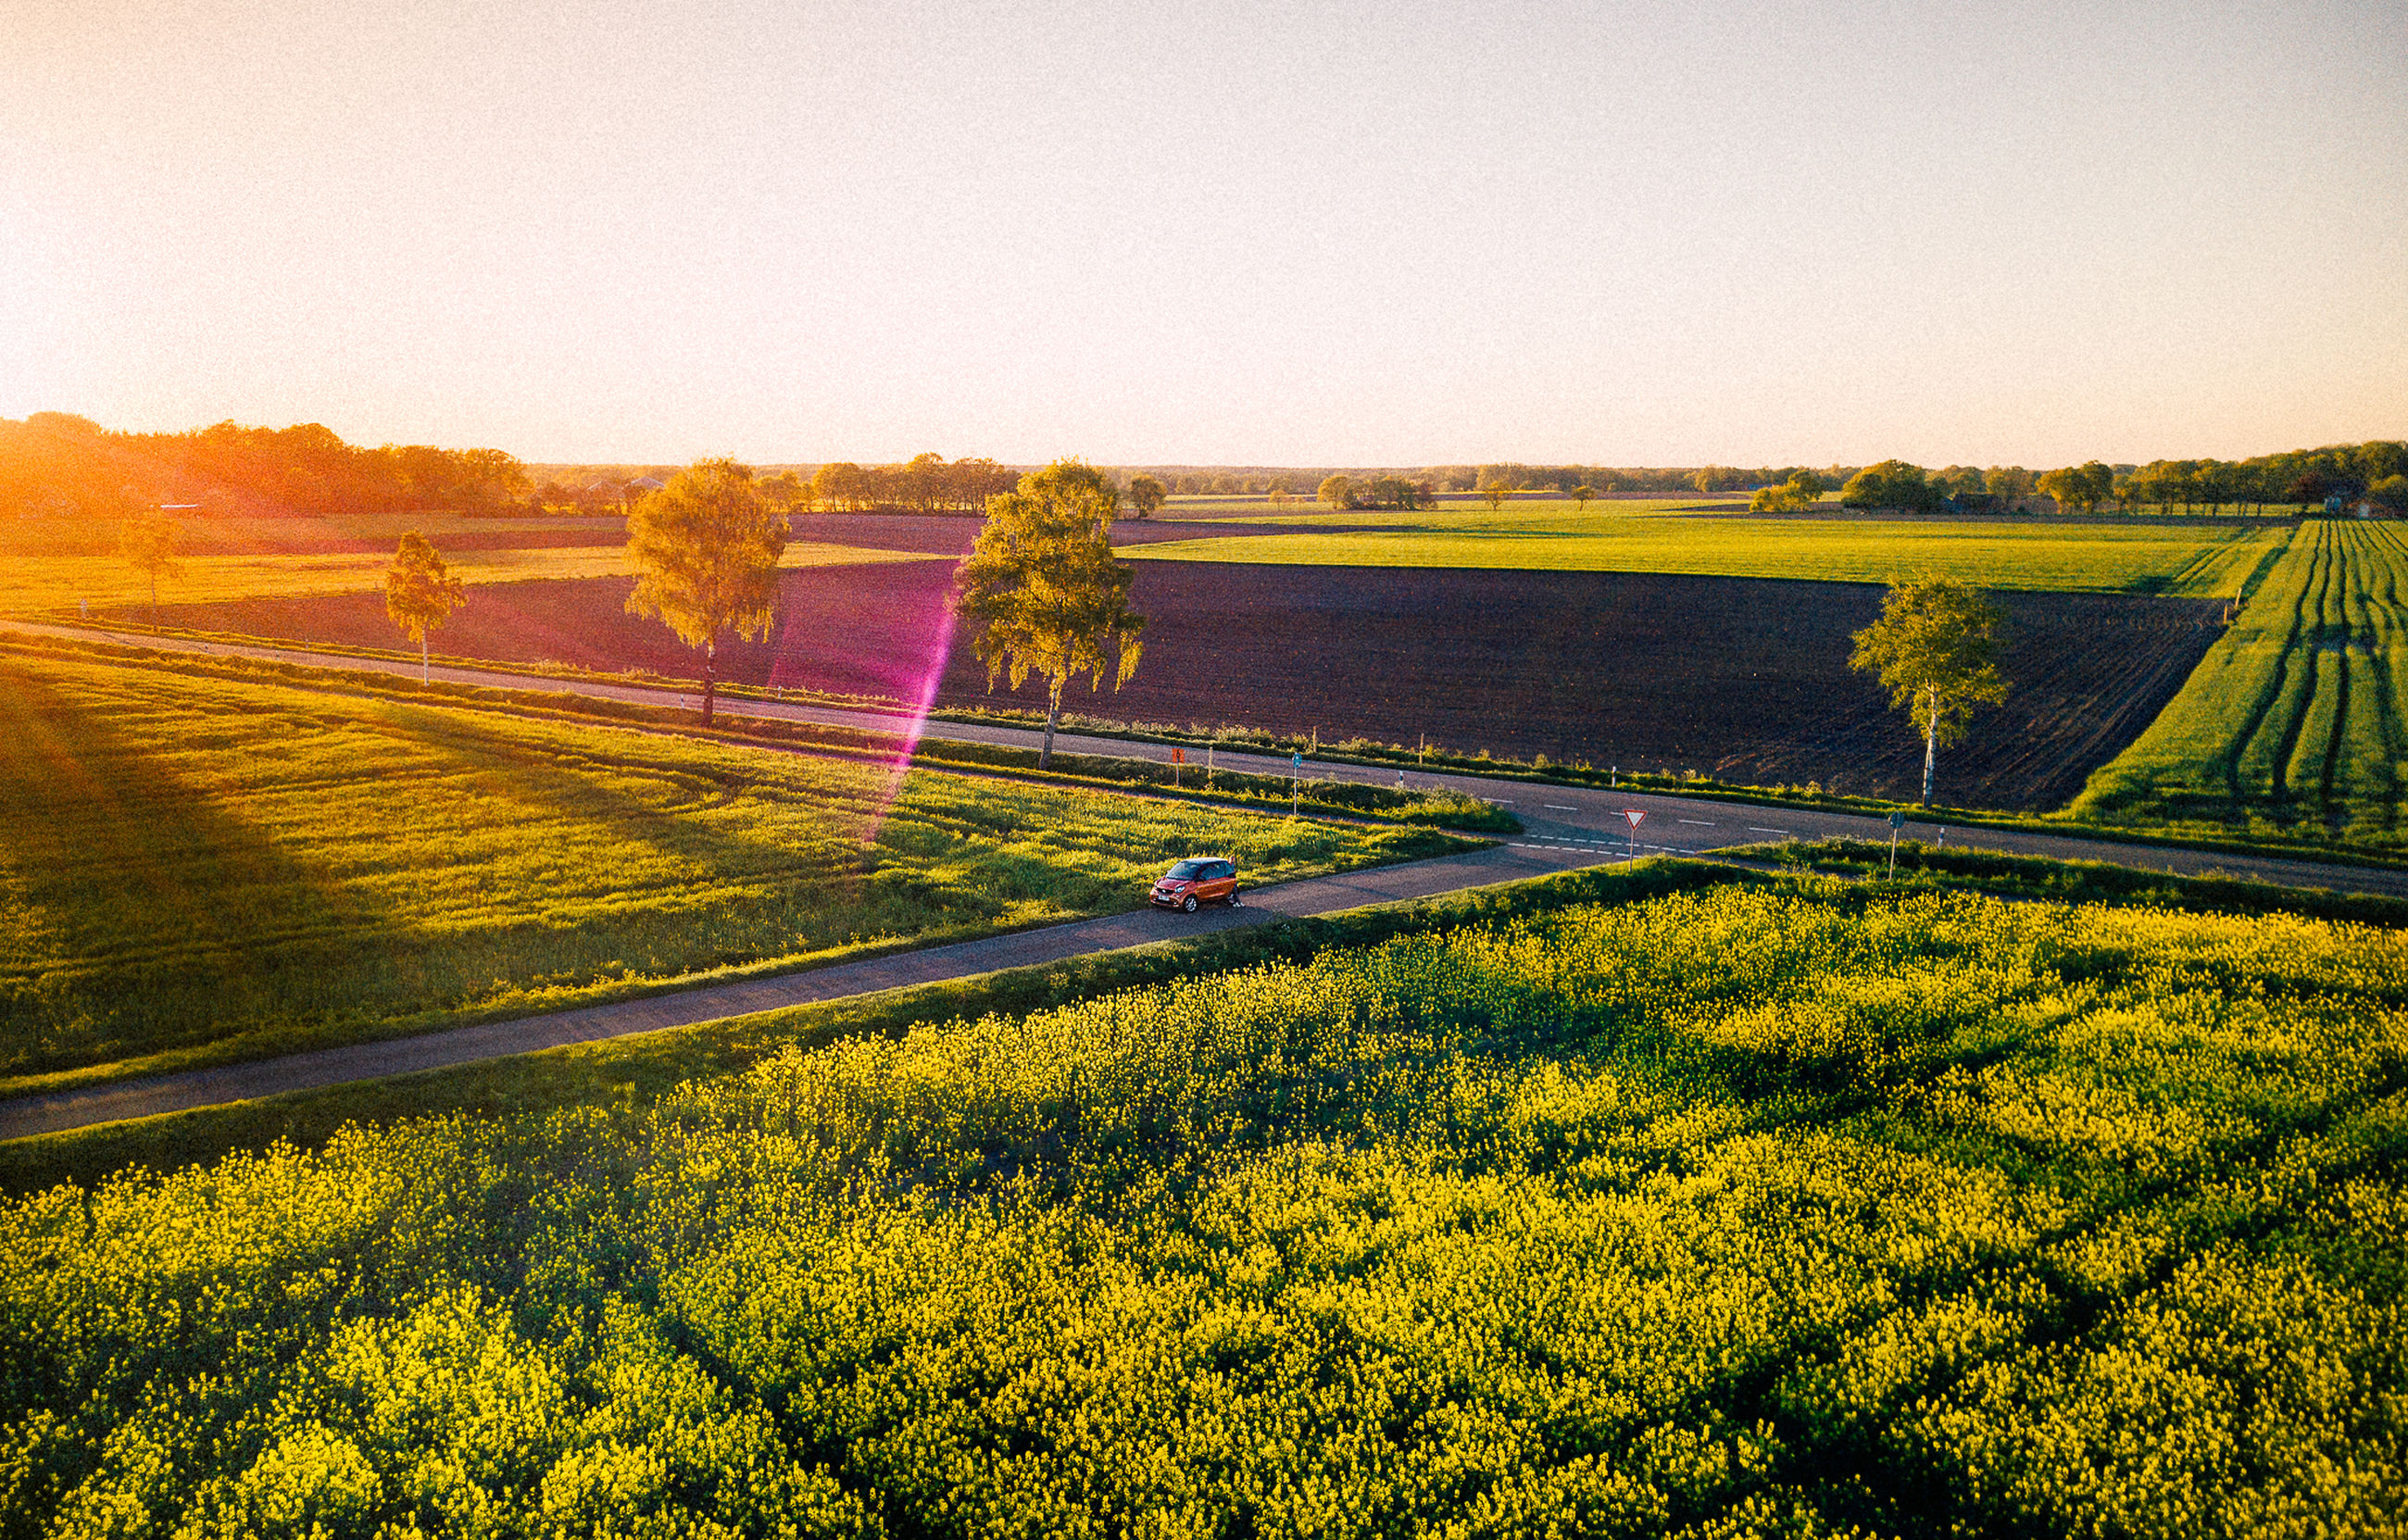 sky, landscape, beauty in nature, tranquility, tranquil scene, plant, environment, field, scenics - nature, clear sky, nature, land, flower, no people, rural scene, growth, copy space, agriculture, flowering plant, yellow, outdoors, lens flare, purple